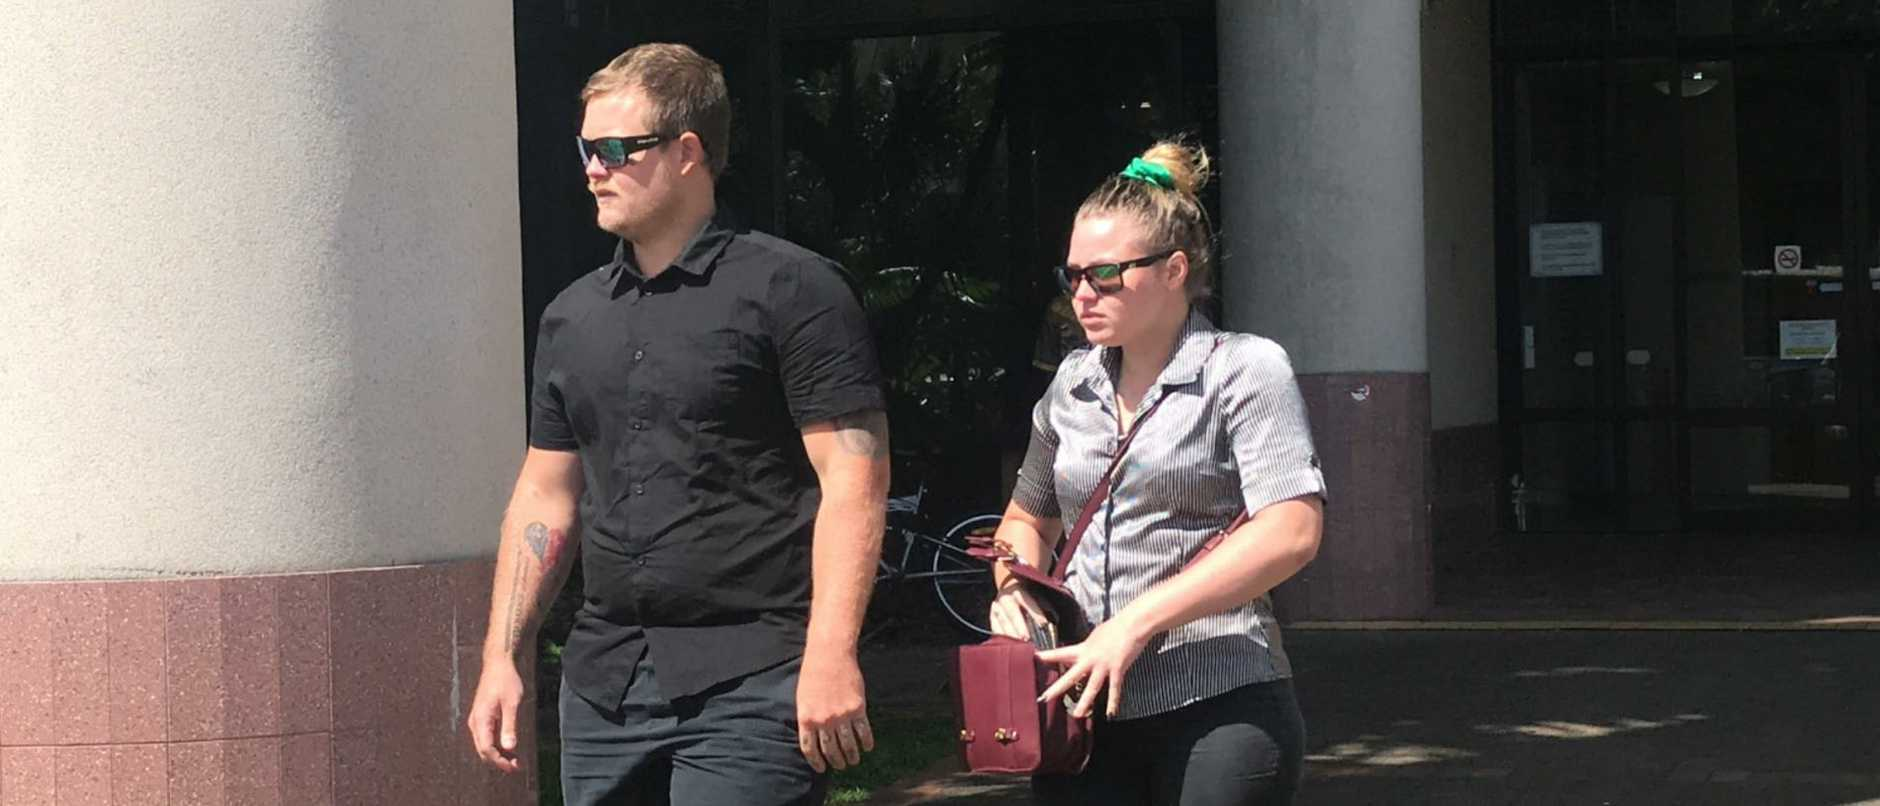 Police have alleged they seized various items including a mobile phone, computers and electronic devices from Kewarra Beach man Kodie James Love, 23, as part of their investigation into the cat's death and alleged stalking of a Trinity Beach man.